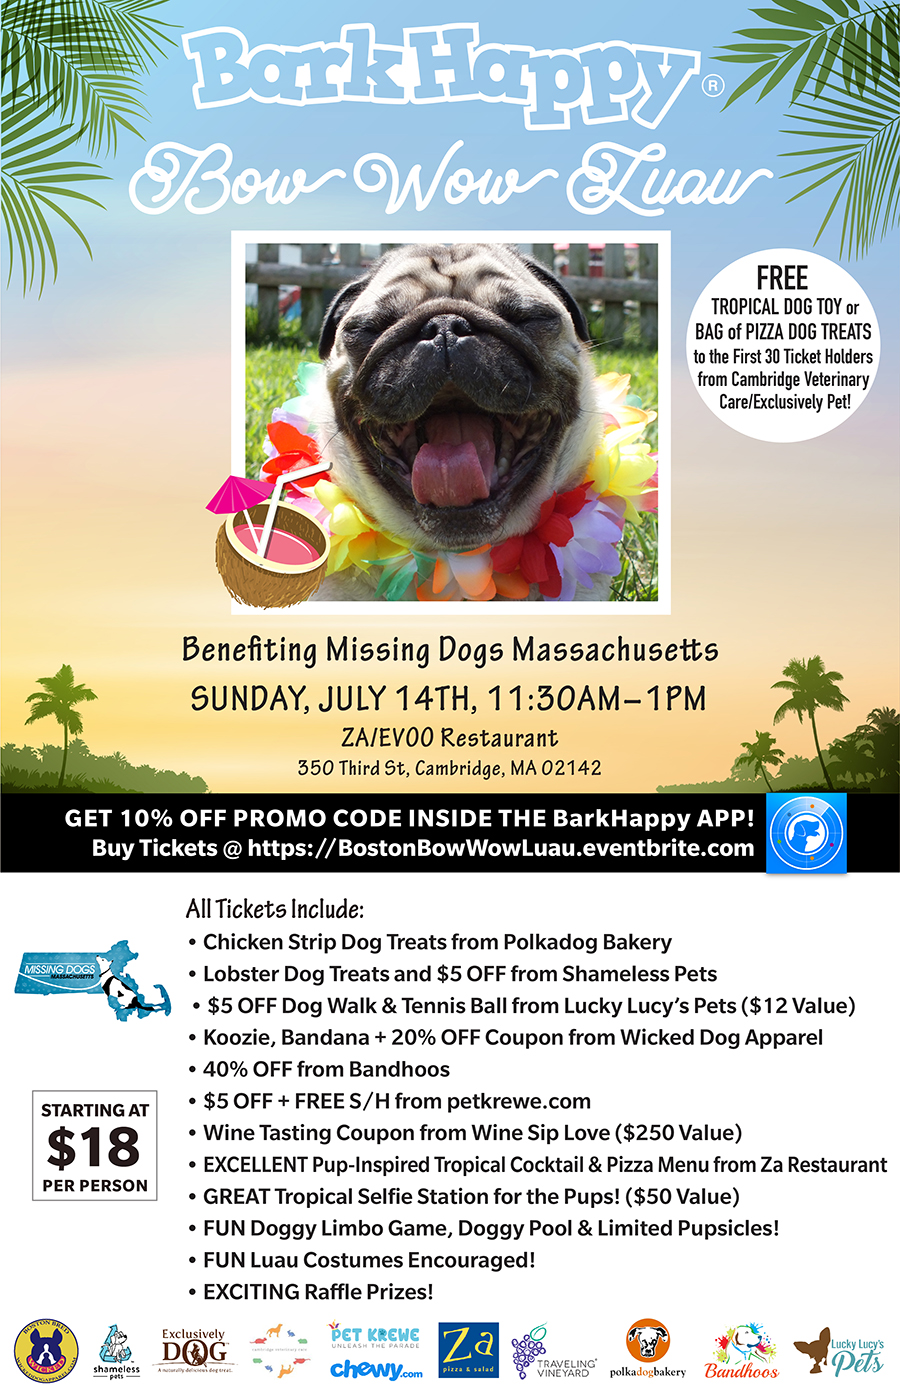 BarkHappy Boston: Bow Wow Luau for Missing Dogs MA [07/14/19]